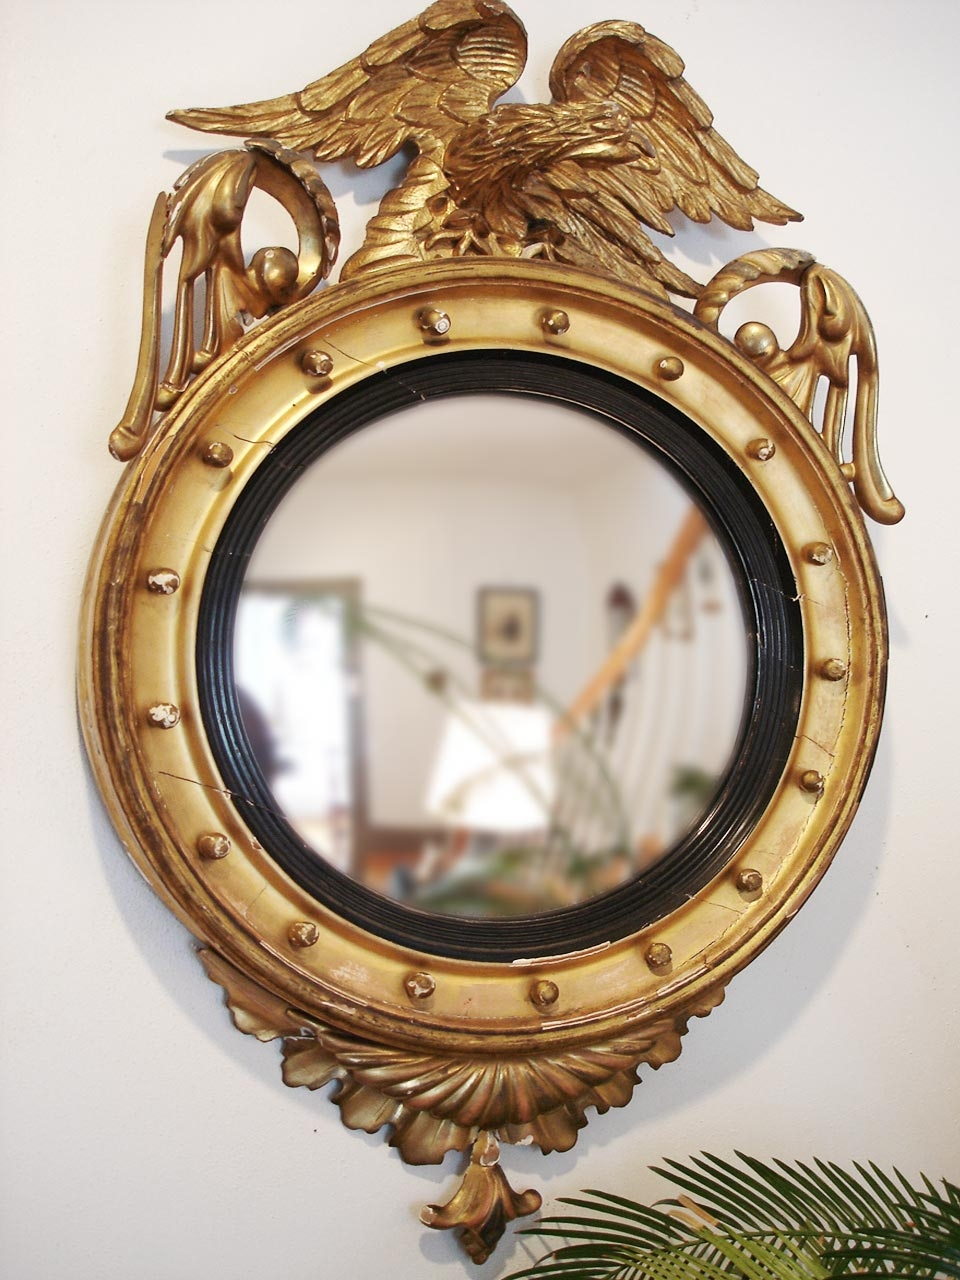 Eagle Federal Convex Mirror Spray Paint Black Or Different Color Throughout Antique Convex Mirrors For Sale (View 8 of 15)